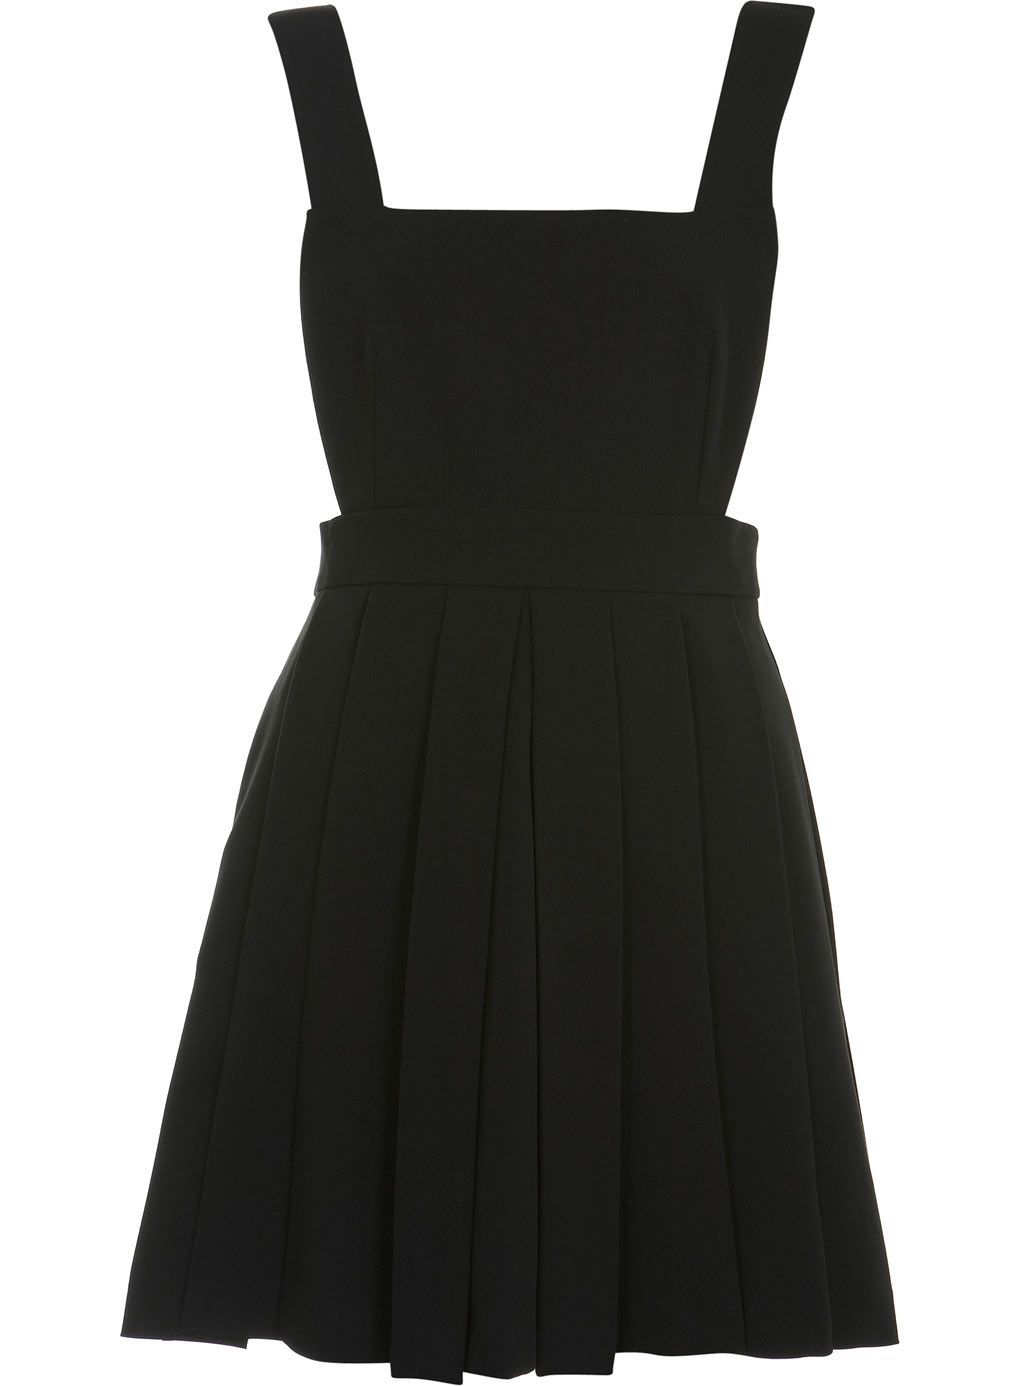 Latest Y-3 Black Pinafore Playsuit For Women Selling Well